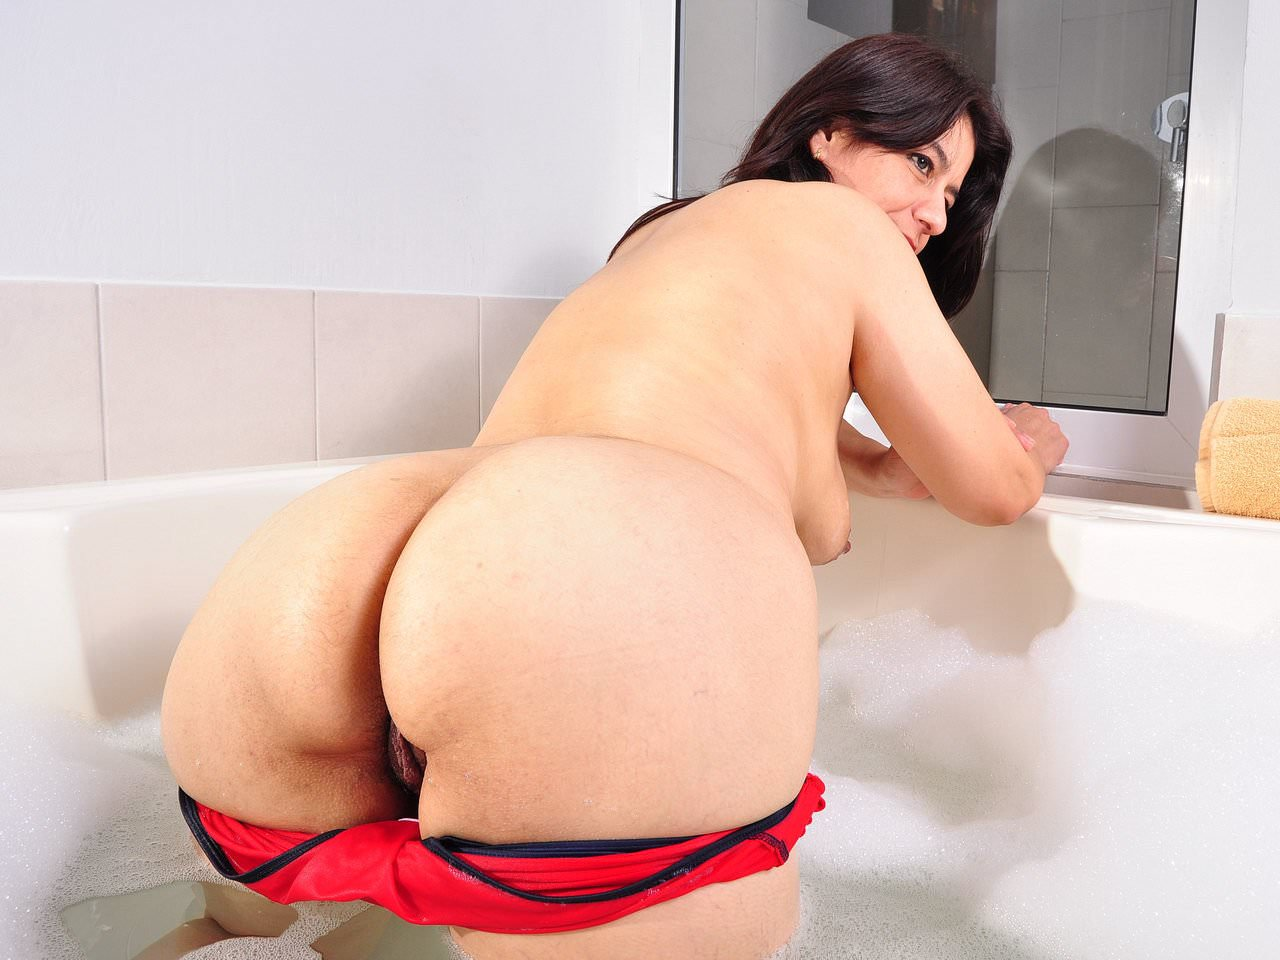 Latina milf anabella needs a relaxing bath